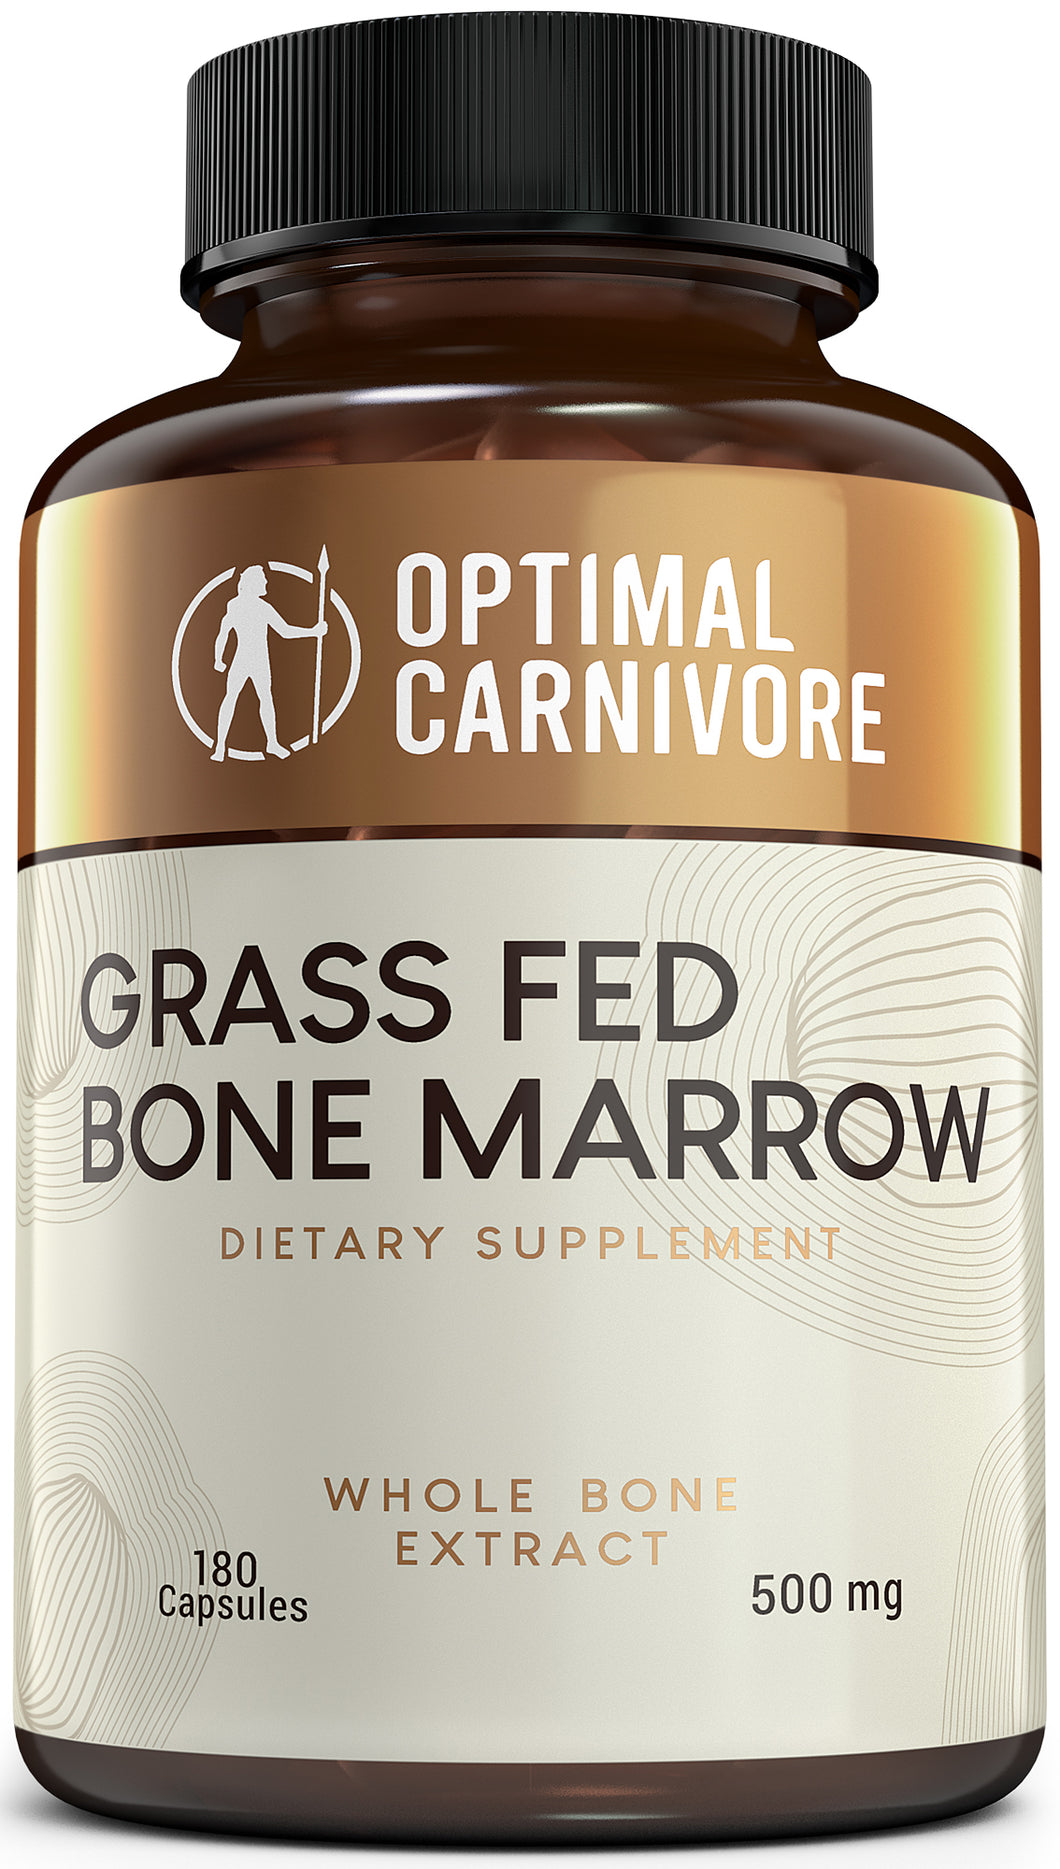 Grass Fed Bone Marrow Supplement - Ancestral Superfood, Bone Marrow, Cartilage & Collagen Capsules - More Nutrients Than Bone Broth by Optimal Carnivore